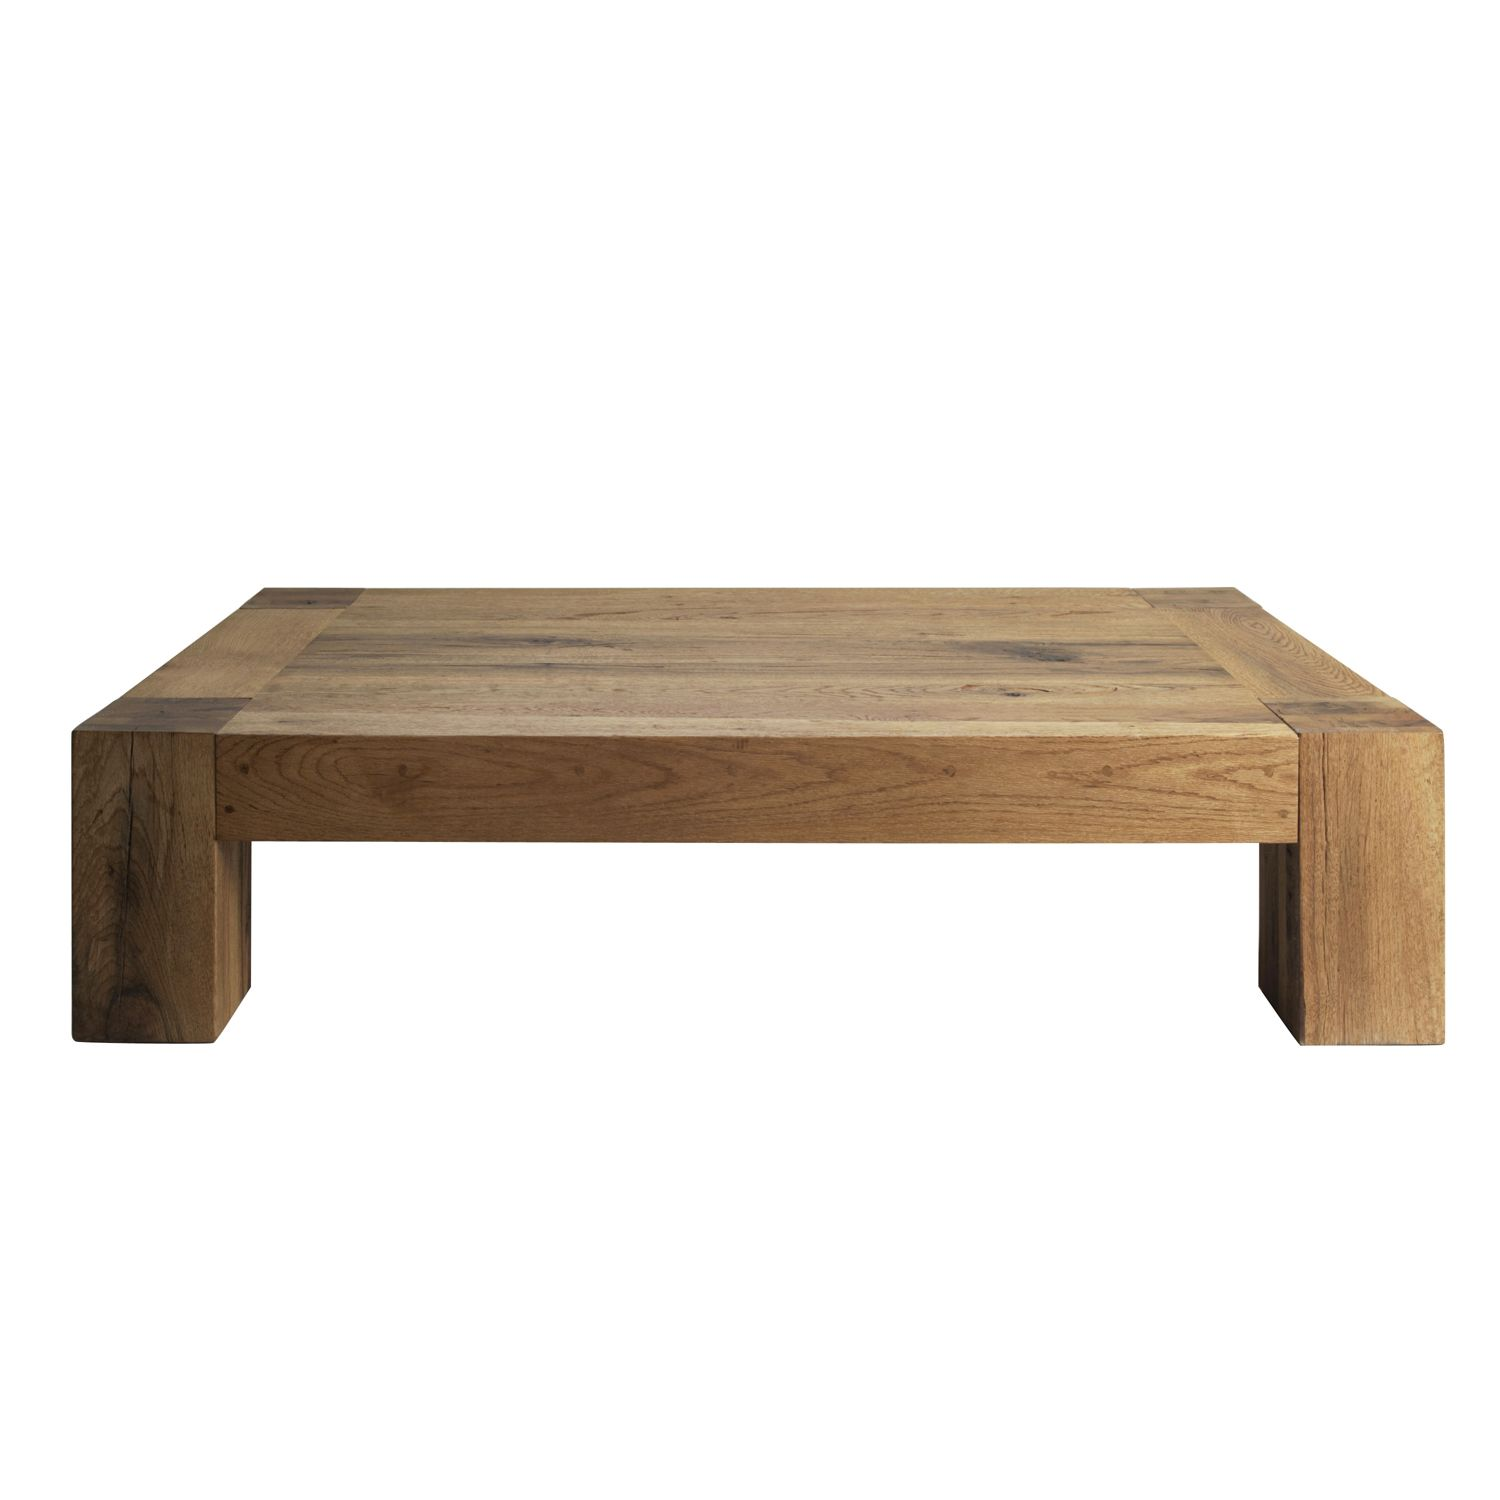 heal s umbrian coffee table wild oak decor pinterest coffee